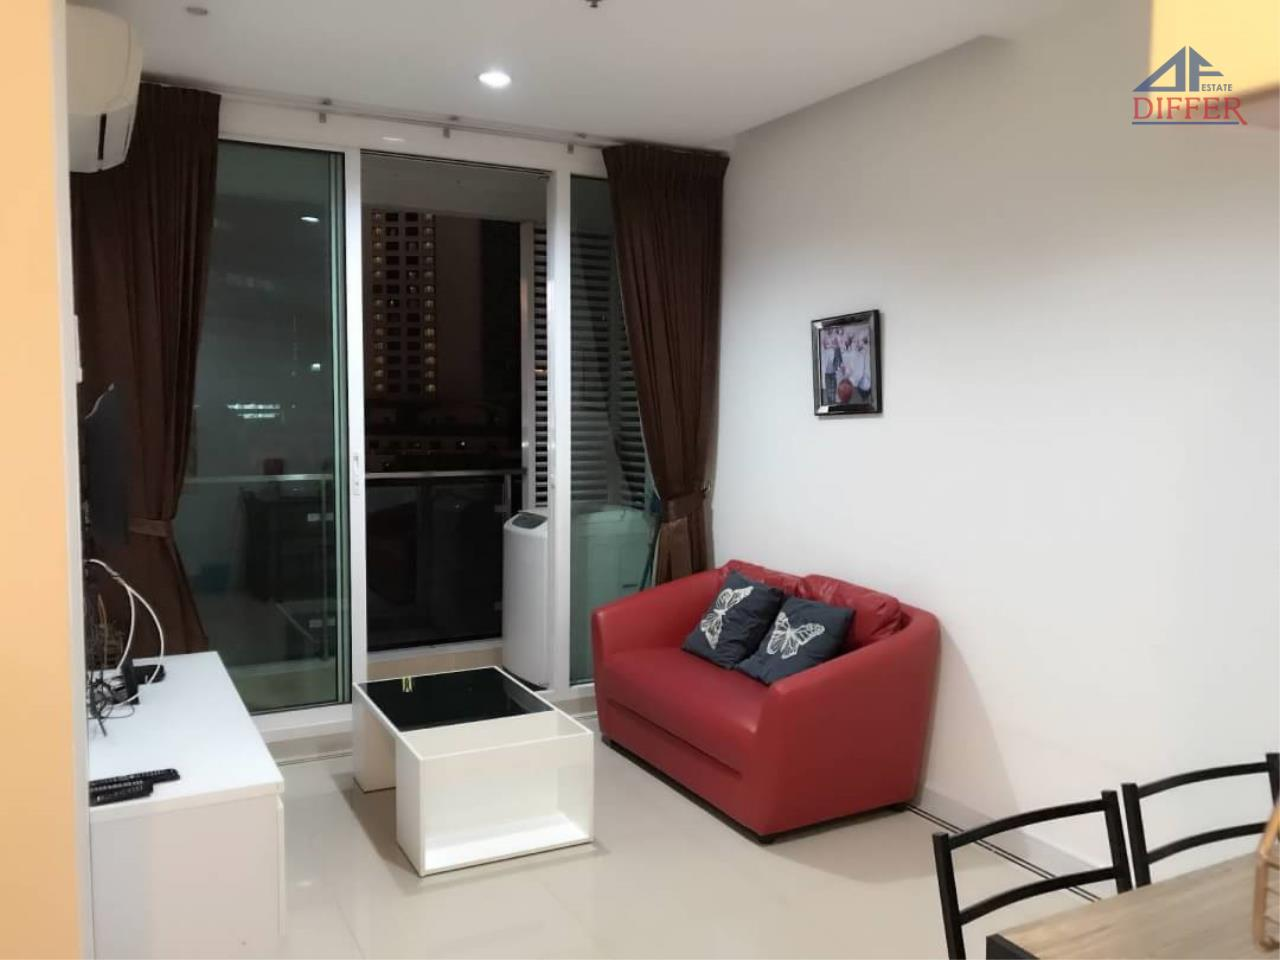 Agent - Kanyaphat srithamnit Agency's R. Condo  Sale and Rent at Rama 9 road TC Green  T0634916442 1